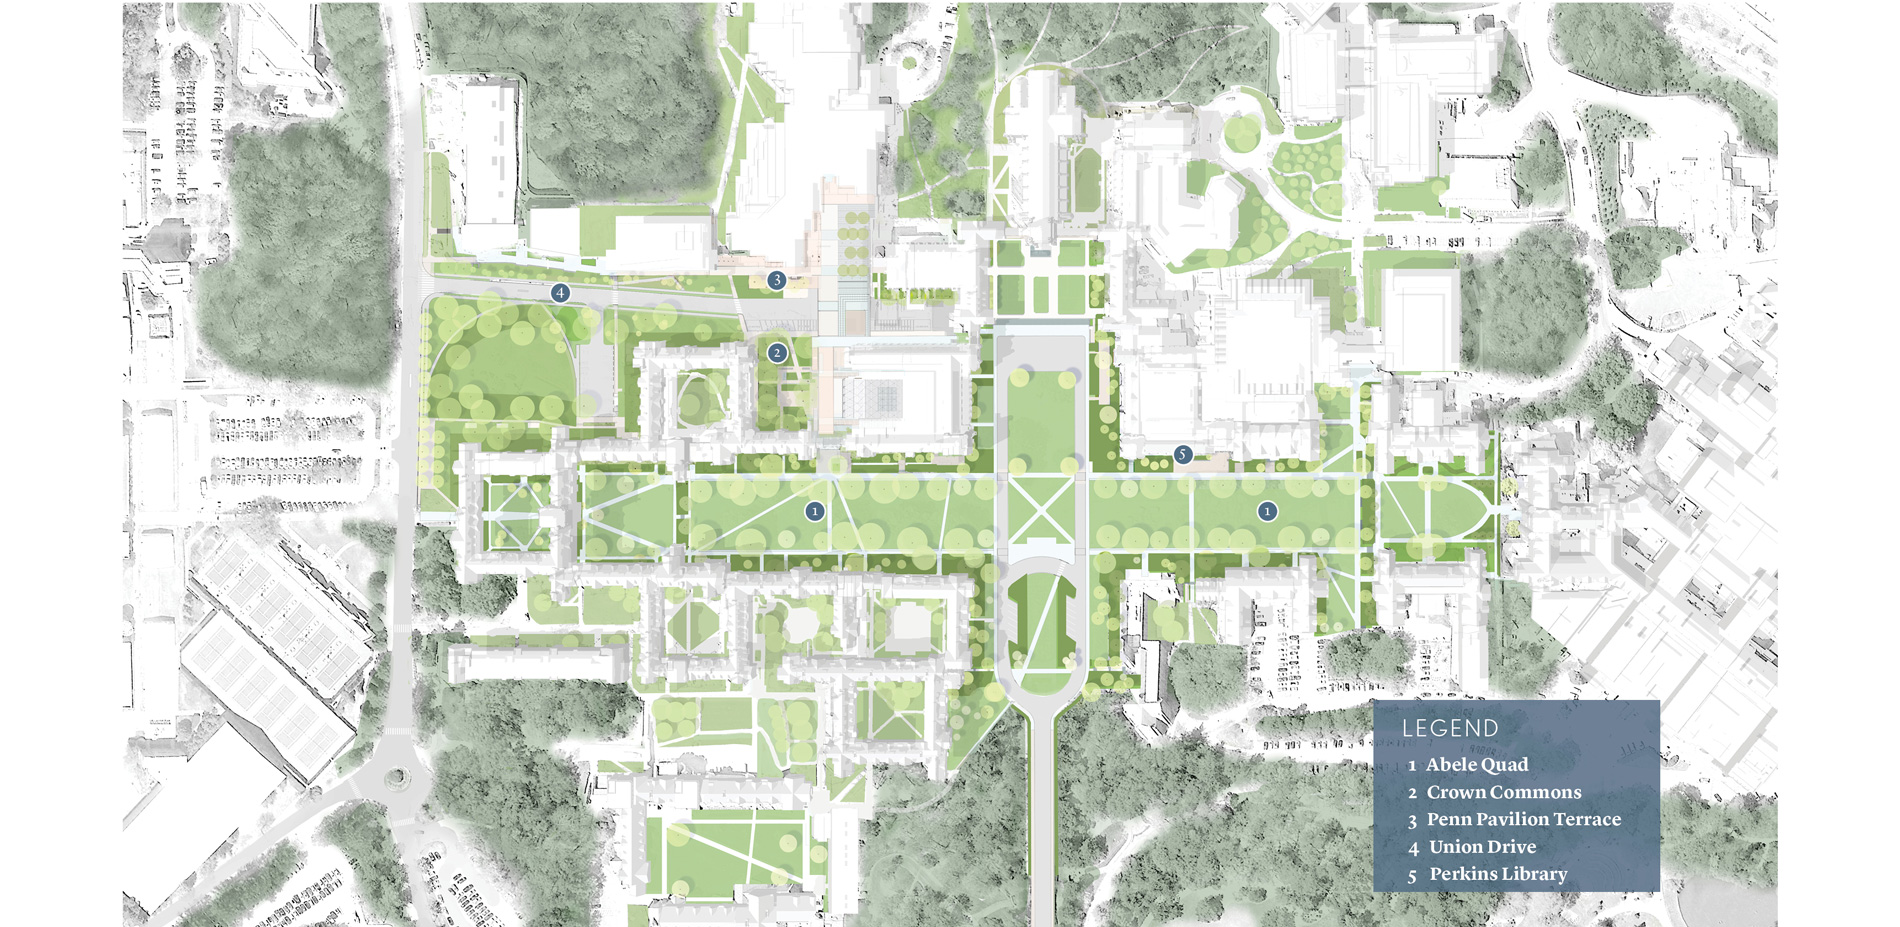 Duke University Map on